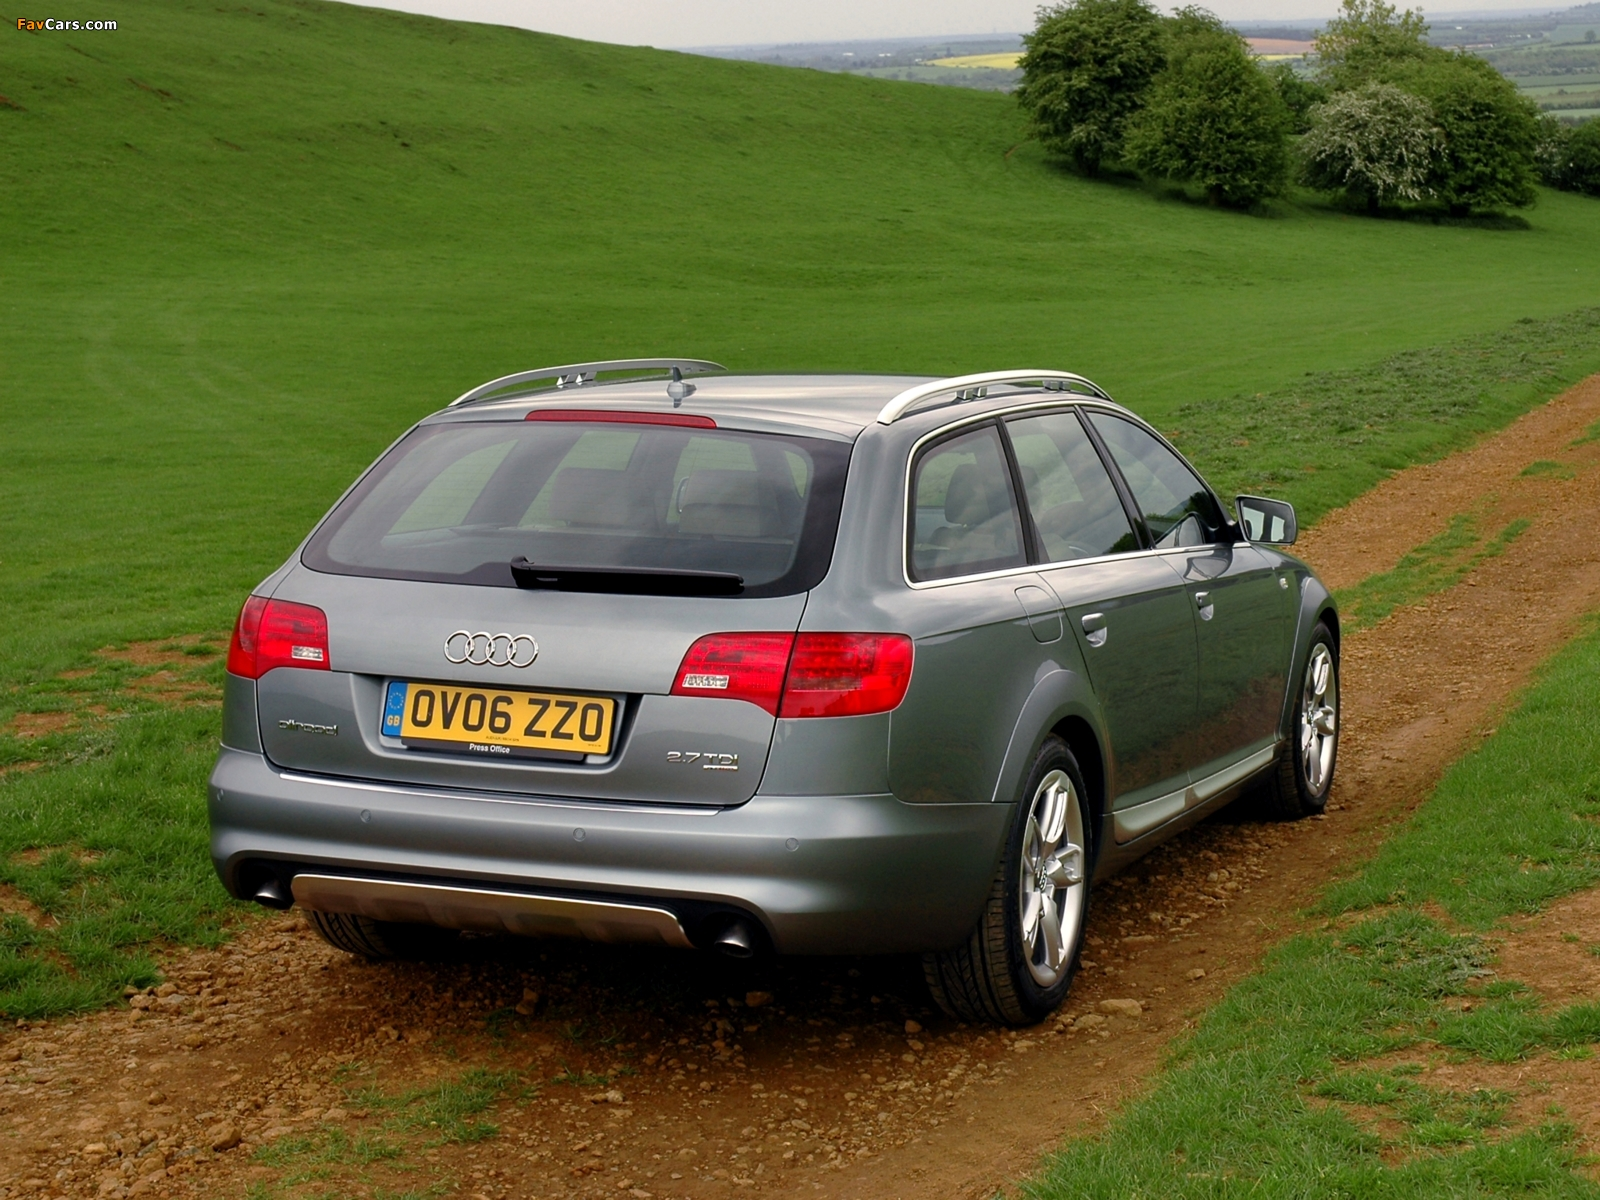 audi a6 allroad 2 7 tdi quattro uk spec 4f c6 2008 11 wallpapers 1600x1200. Black Bedroom Furniture Sets. Home Design Ideas